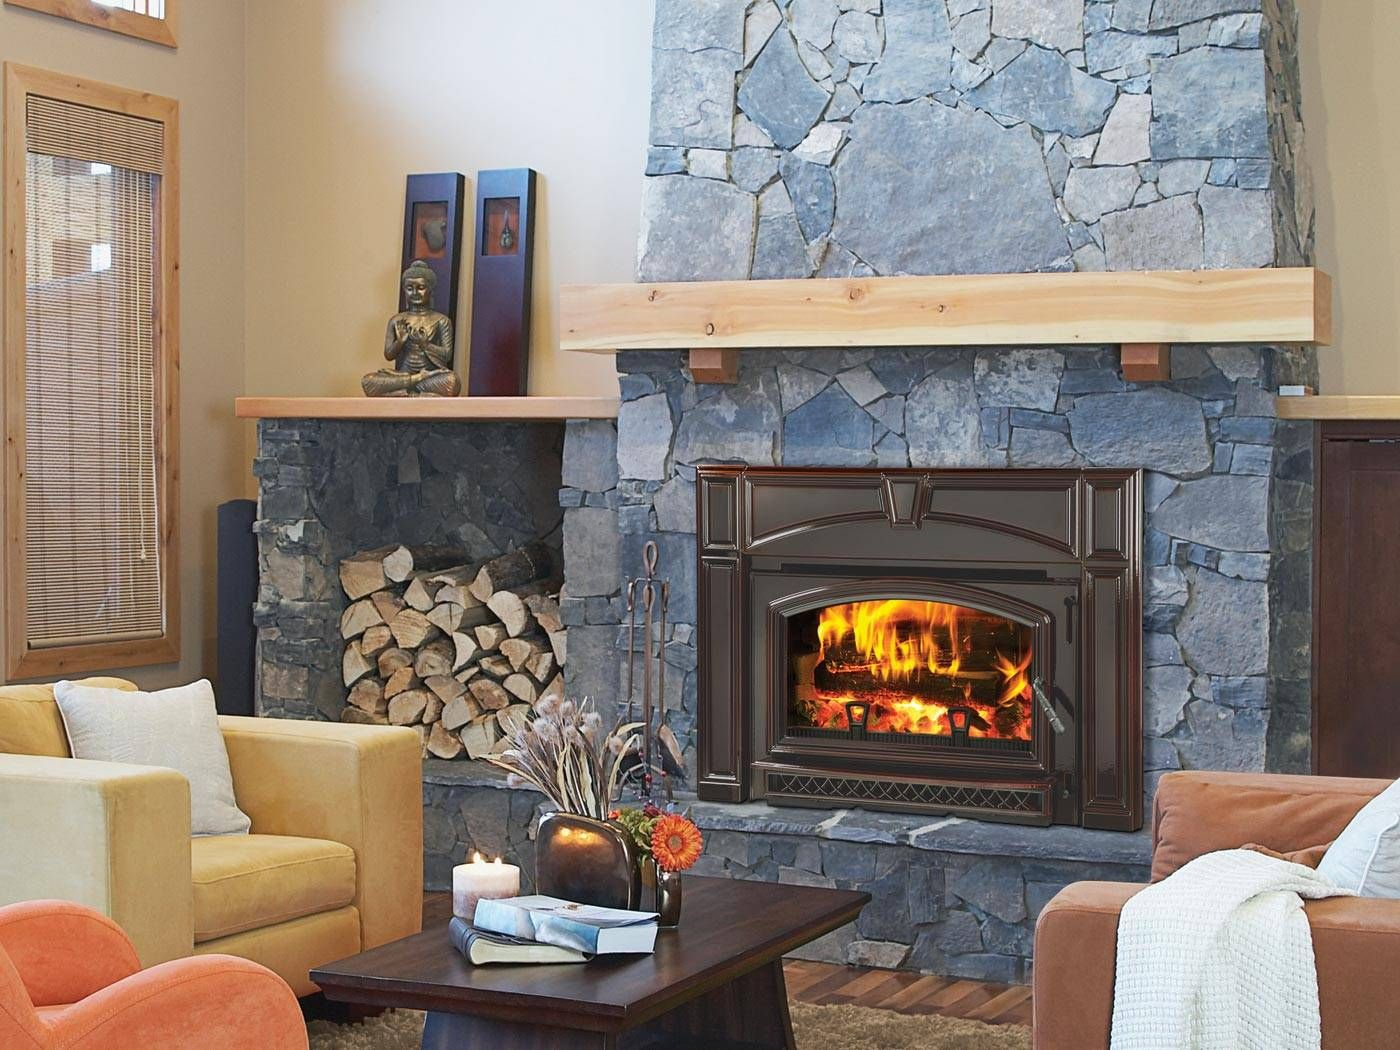 My dream a flush wood burning fireplace insert day stove